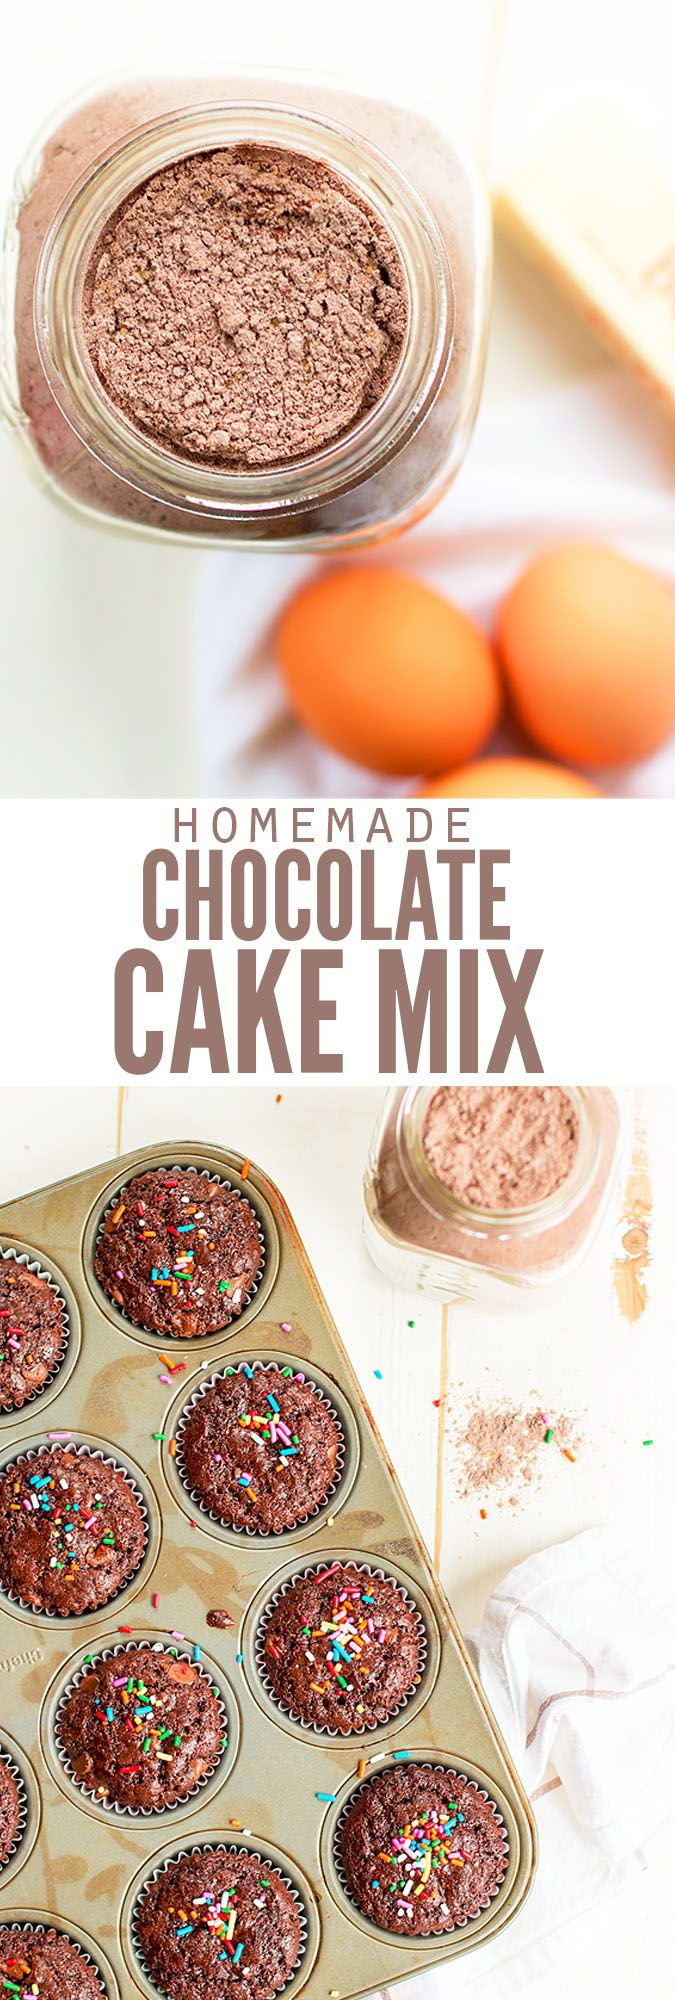 My homemade chocolate cake mix recipe is better than Betty Crocker and Pillsbury, and it's entirely from scratch! Learn how to make cake entirely from scratch using ingredients you already have in the pantry and my instructions. It's SO moist and delicious, you'll never go back to unhealthy boxed cake mixes again! :: DontWastetheCrumbs.com